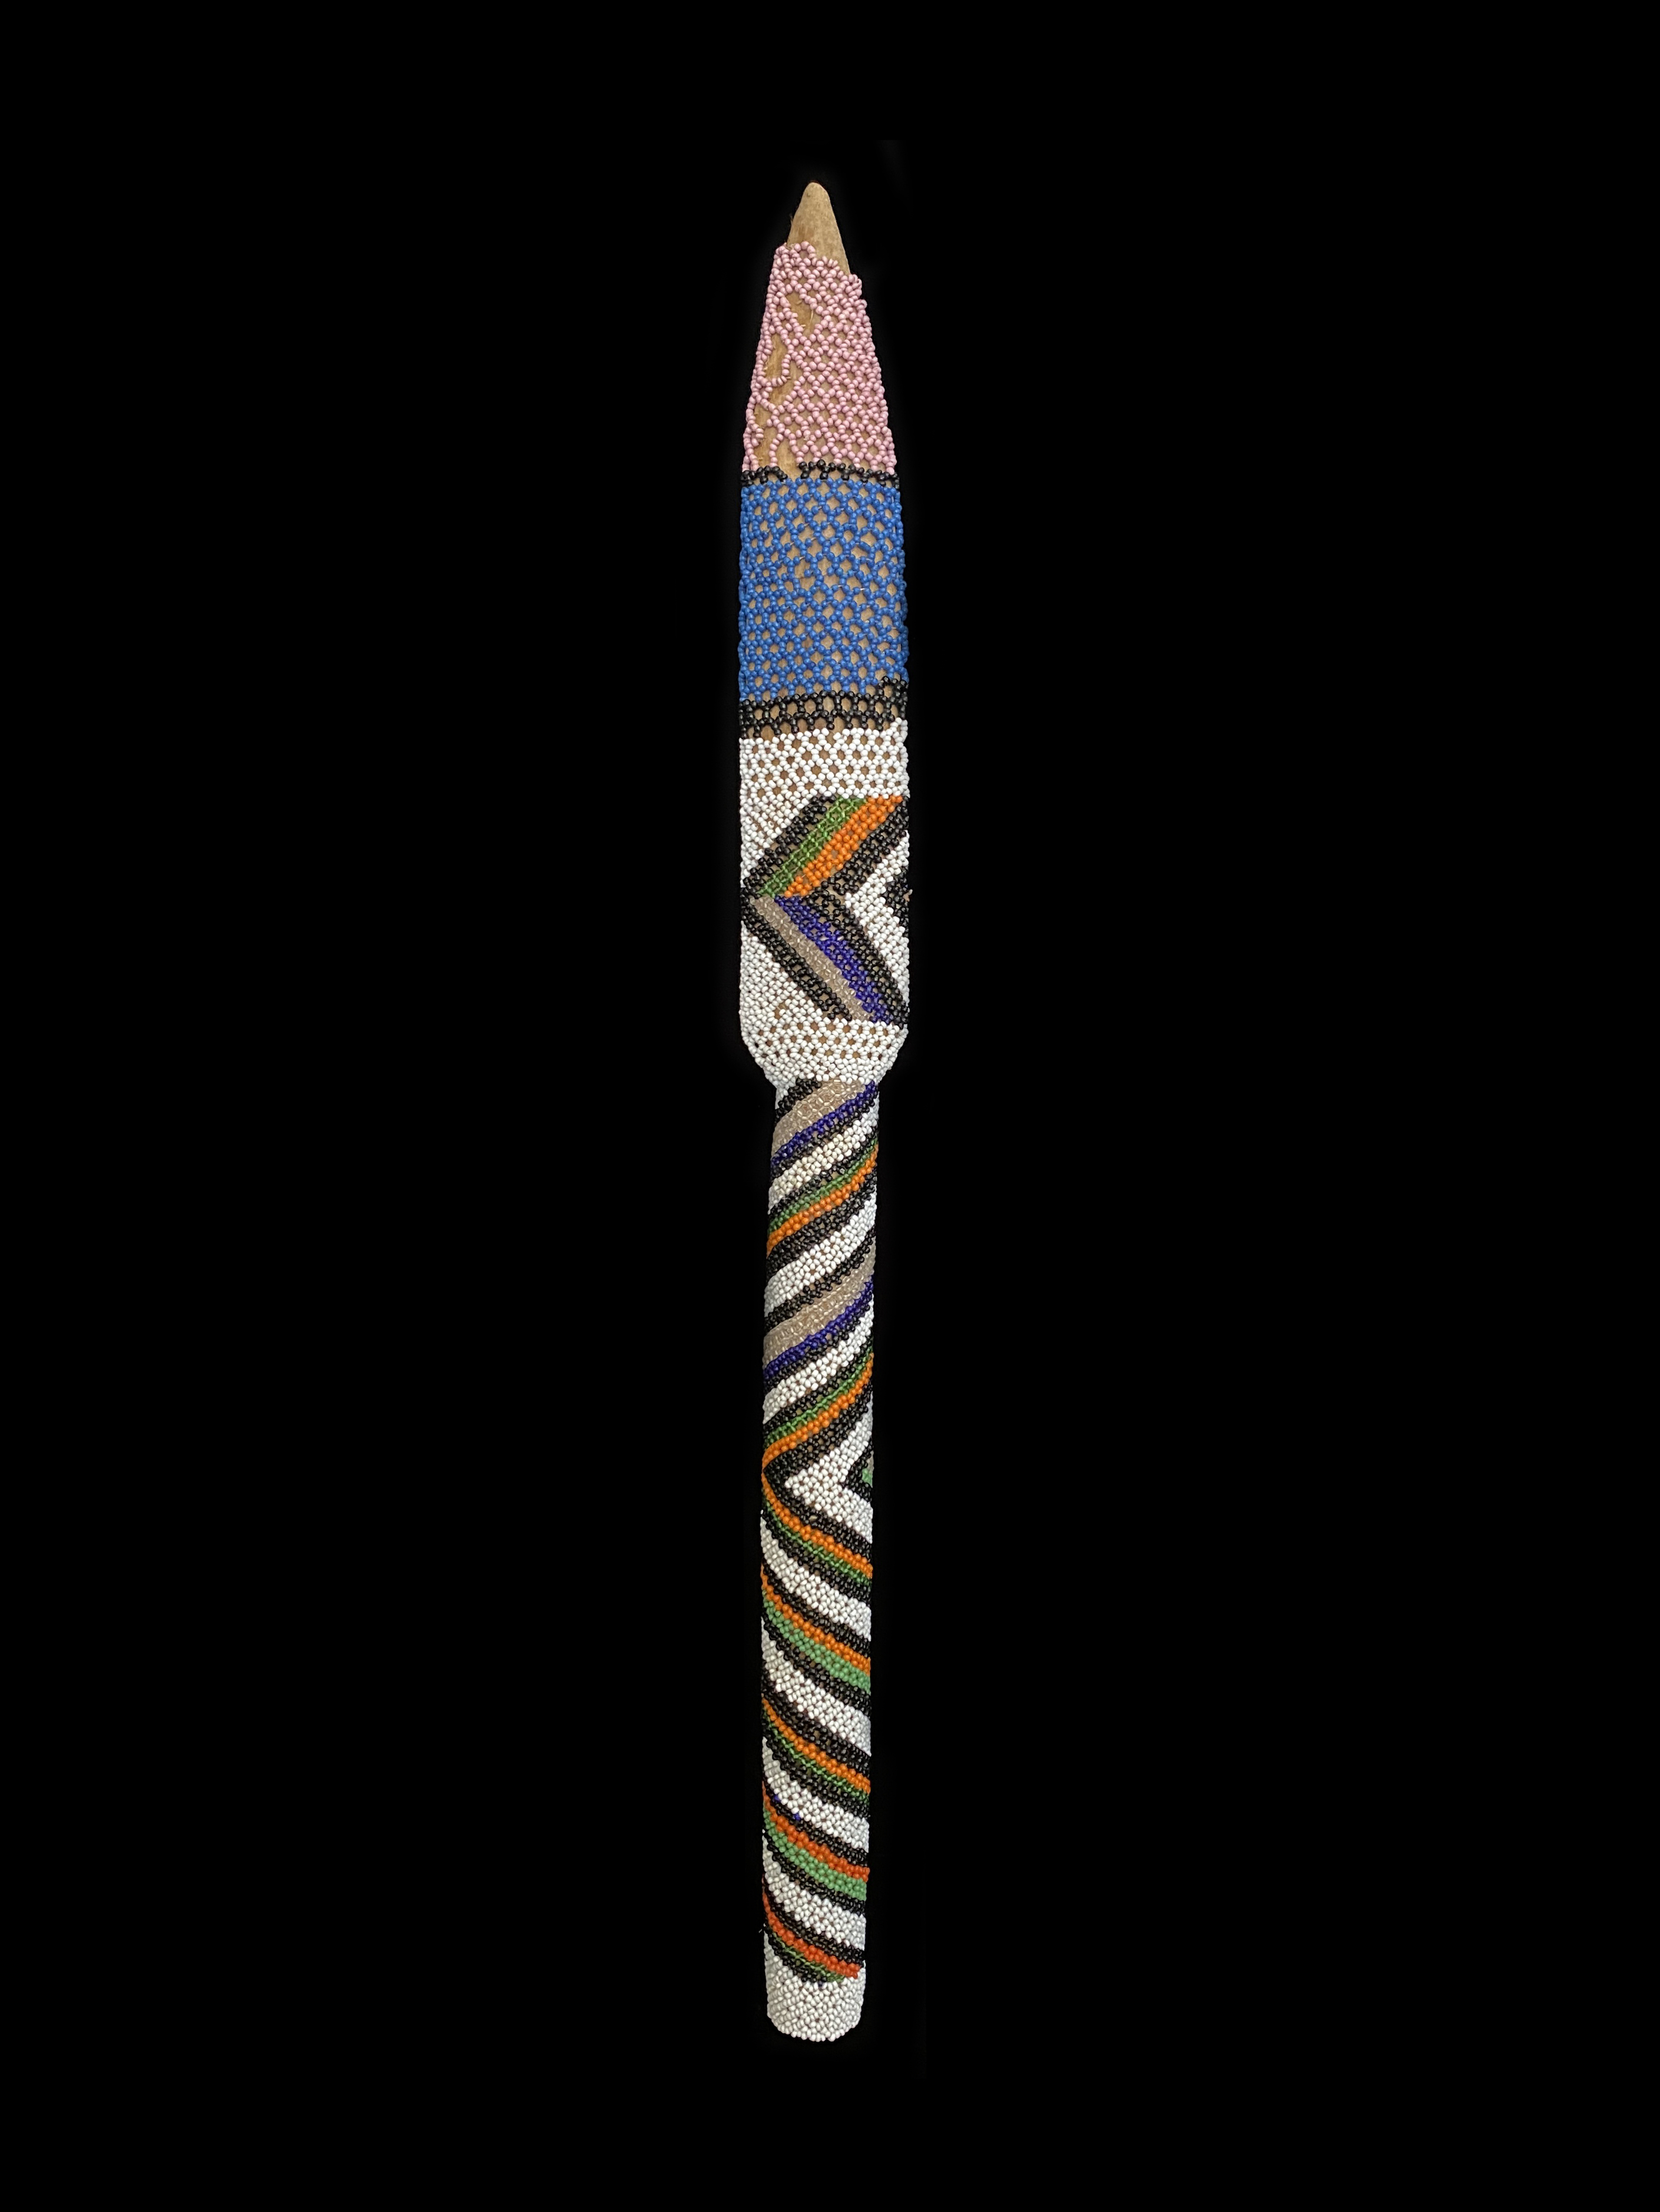 Spear Shaped Beaded Dance Mace - Ndebele People, South Africa